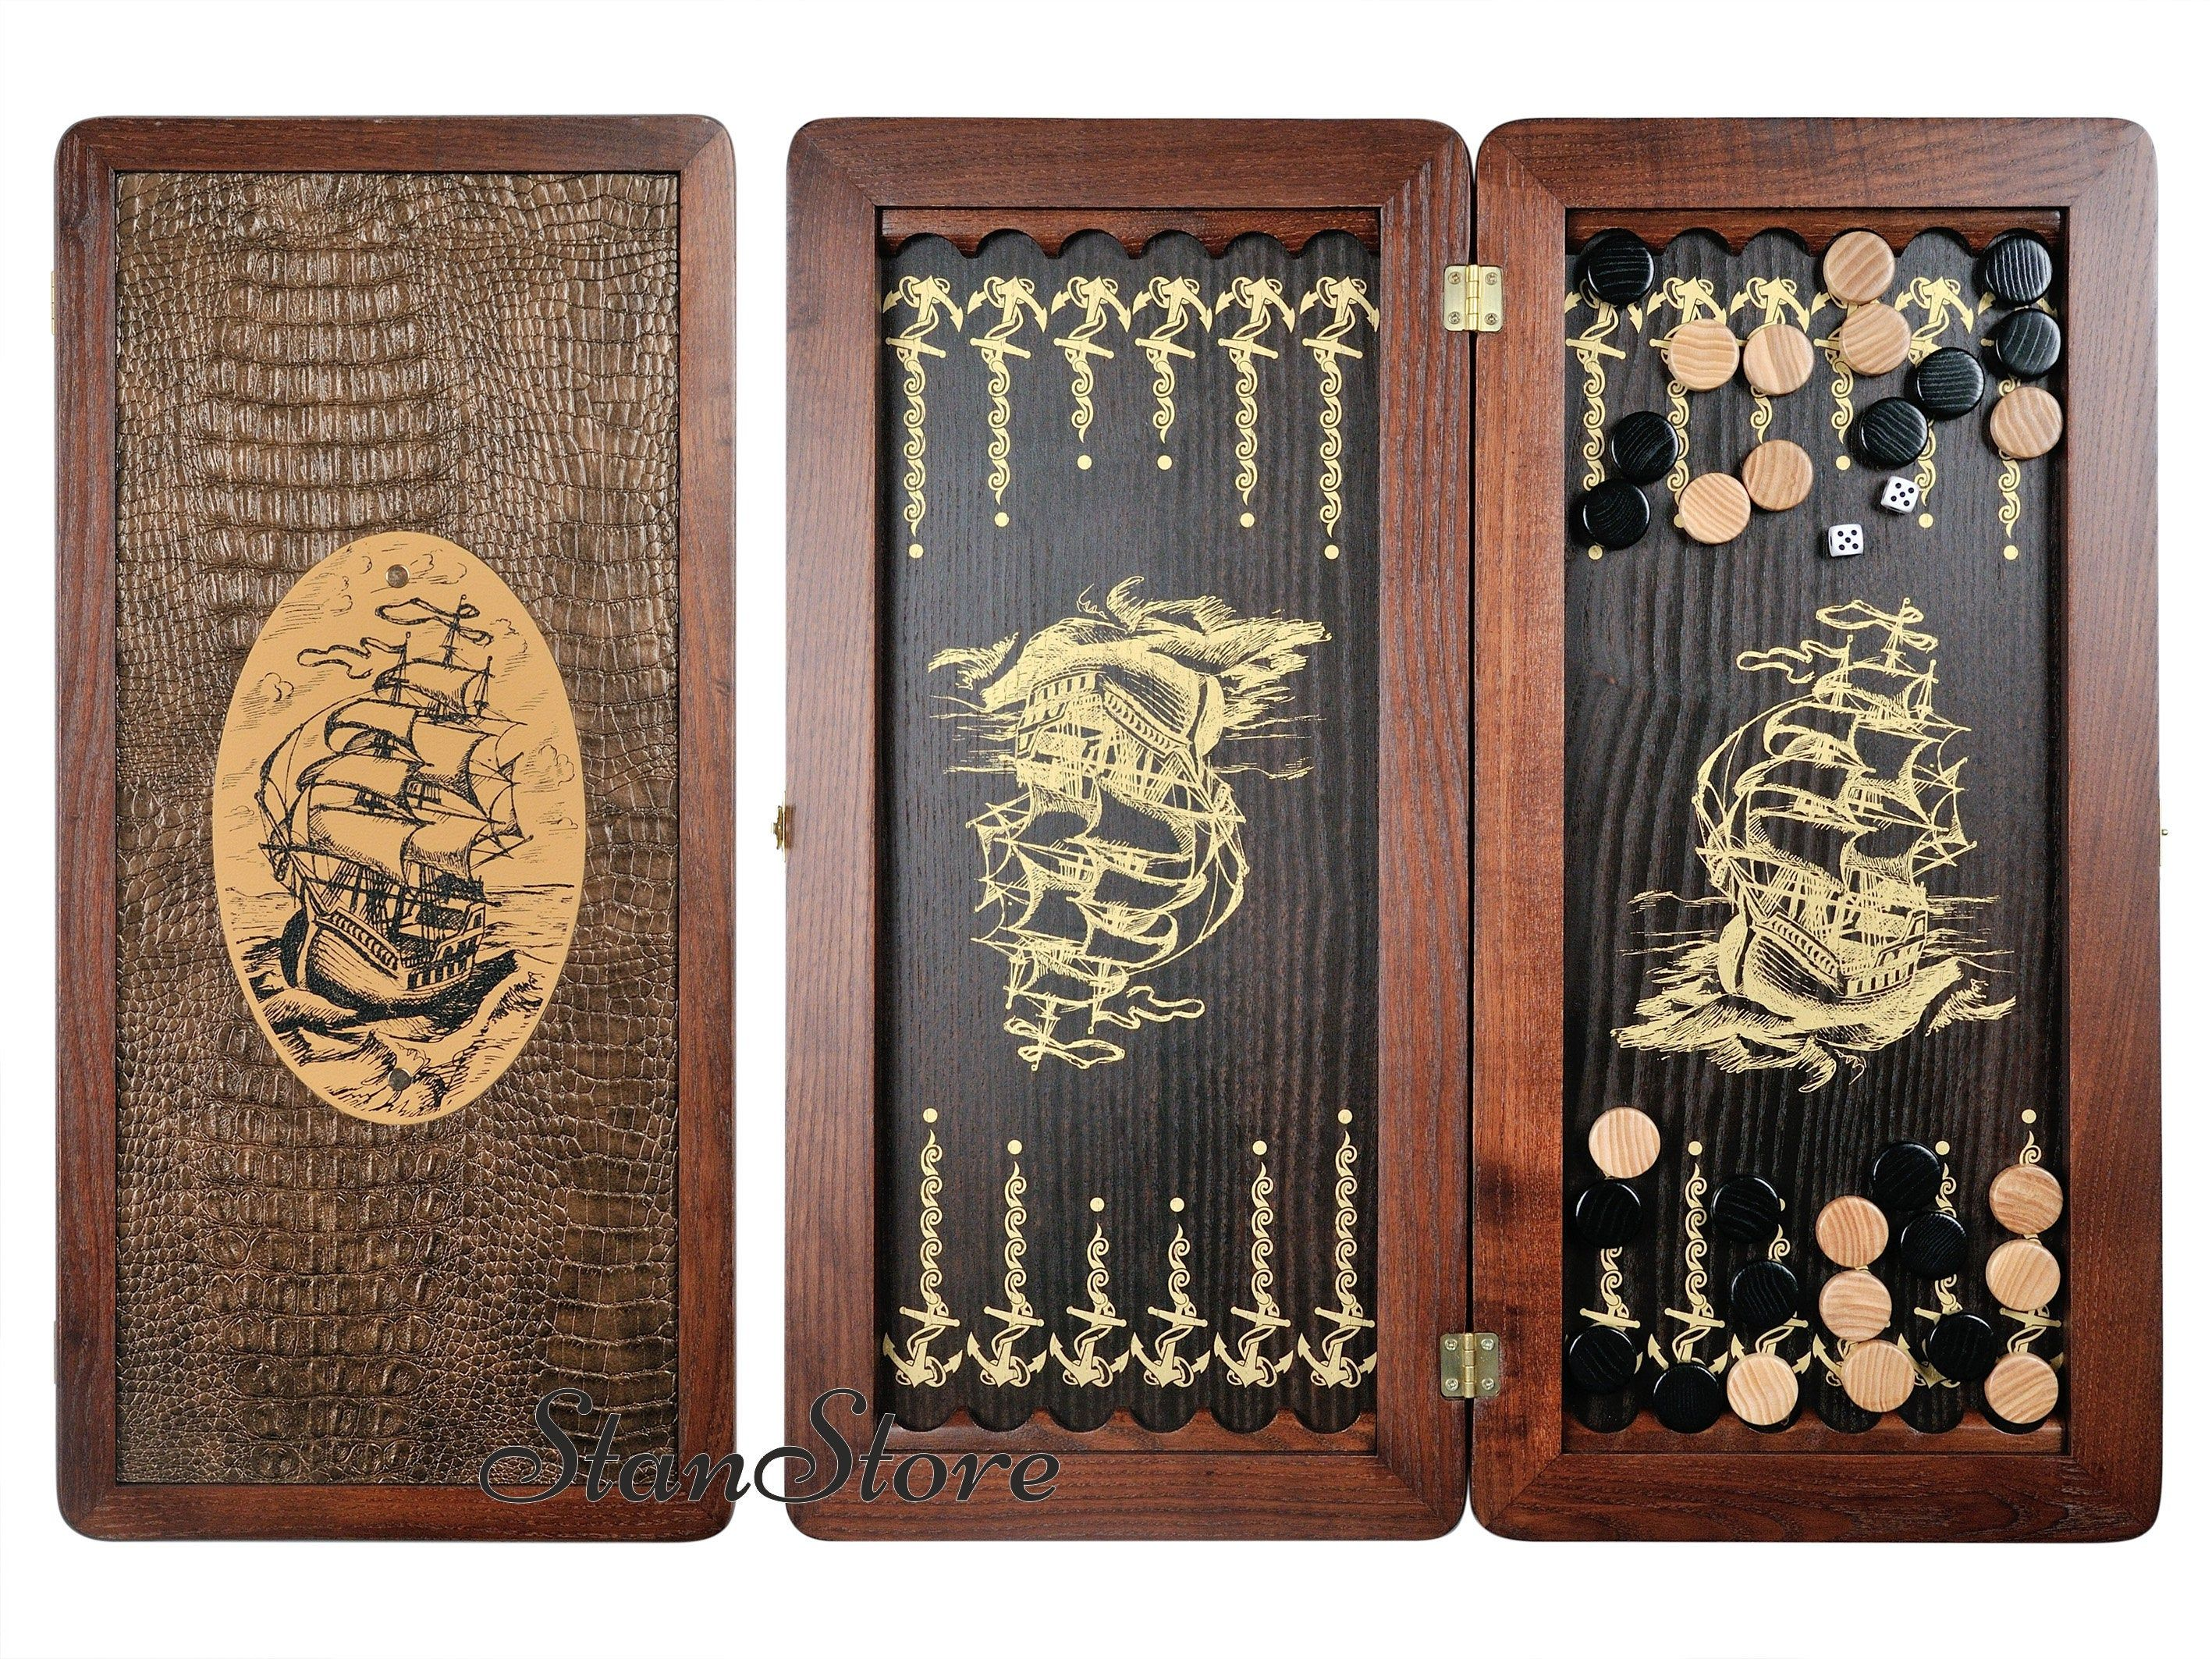 Backgammon Set with Stones Dice SHIP Leather Personalized